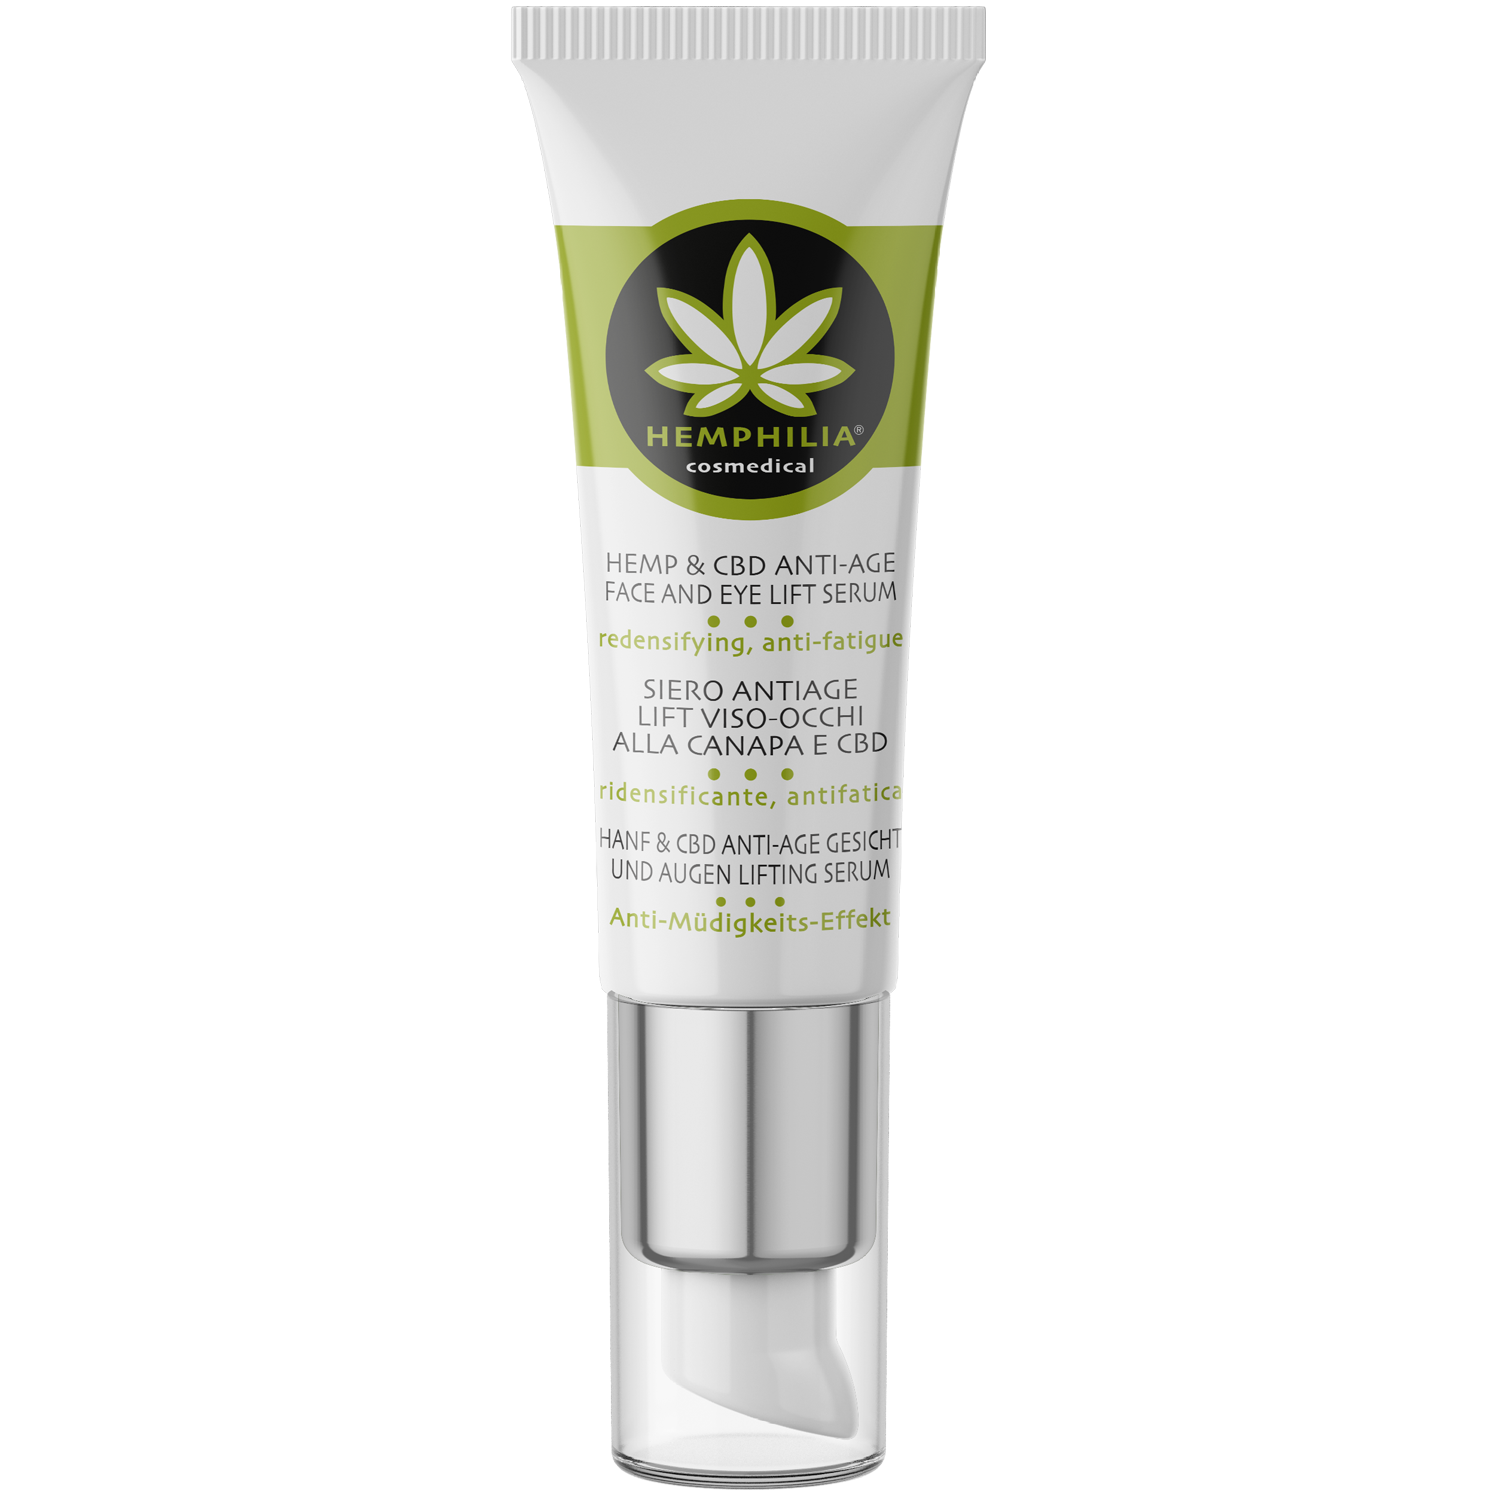 Hemp & CBD Anti-Age Face And Eye Lift Serum